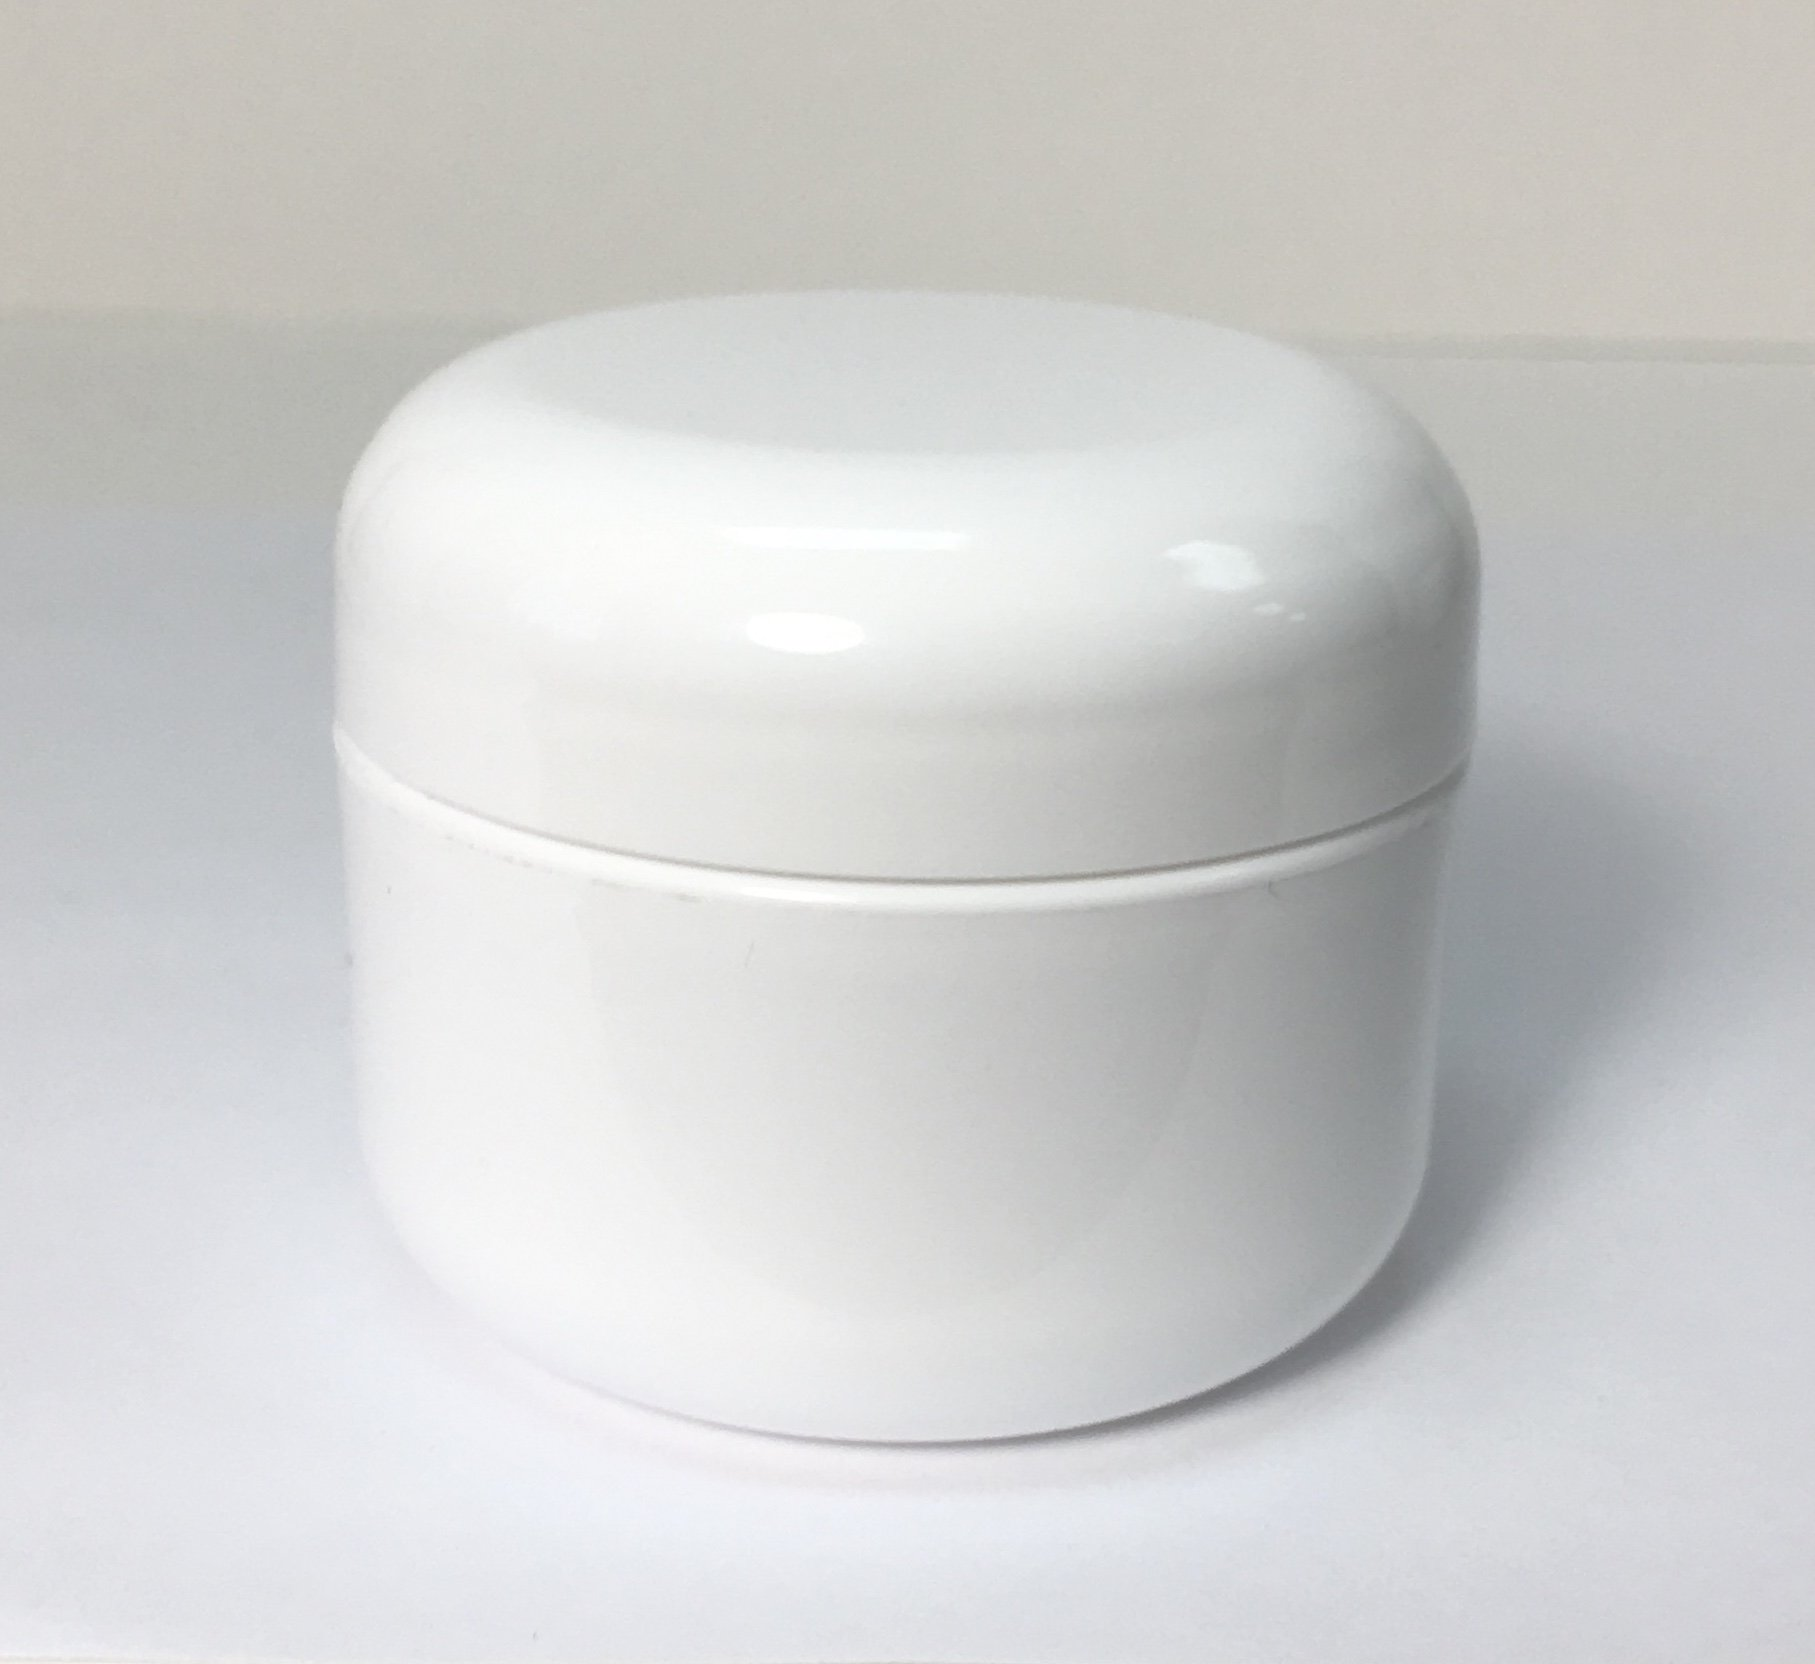 1oz Double Wall Round-Base White Plastic Jar with Foil Lined Dome Lid